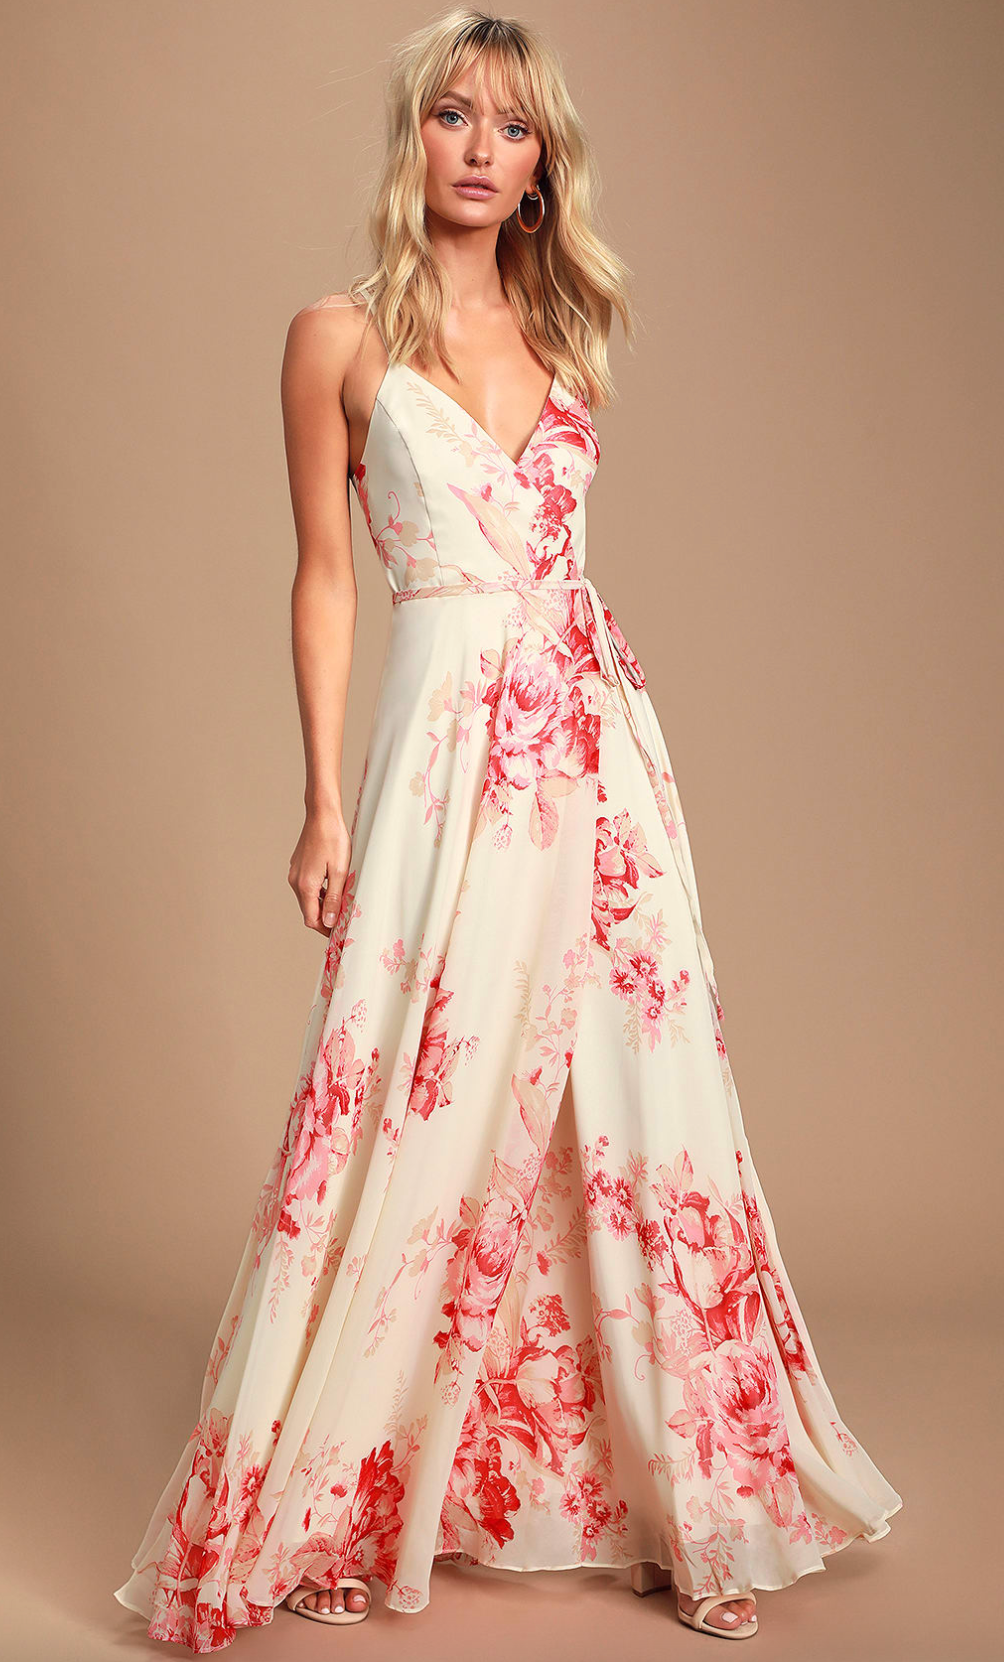 Cream and coral floral print dress from Lulu's